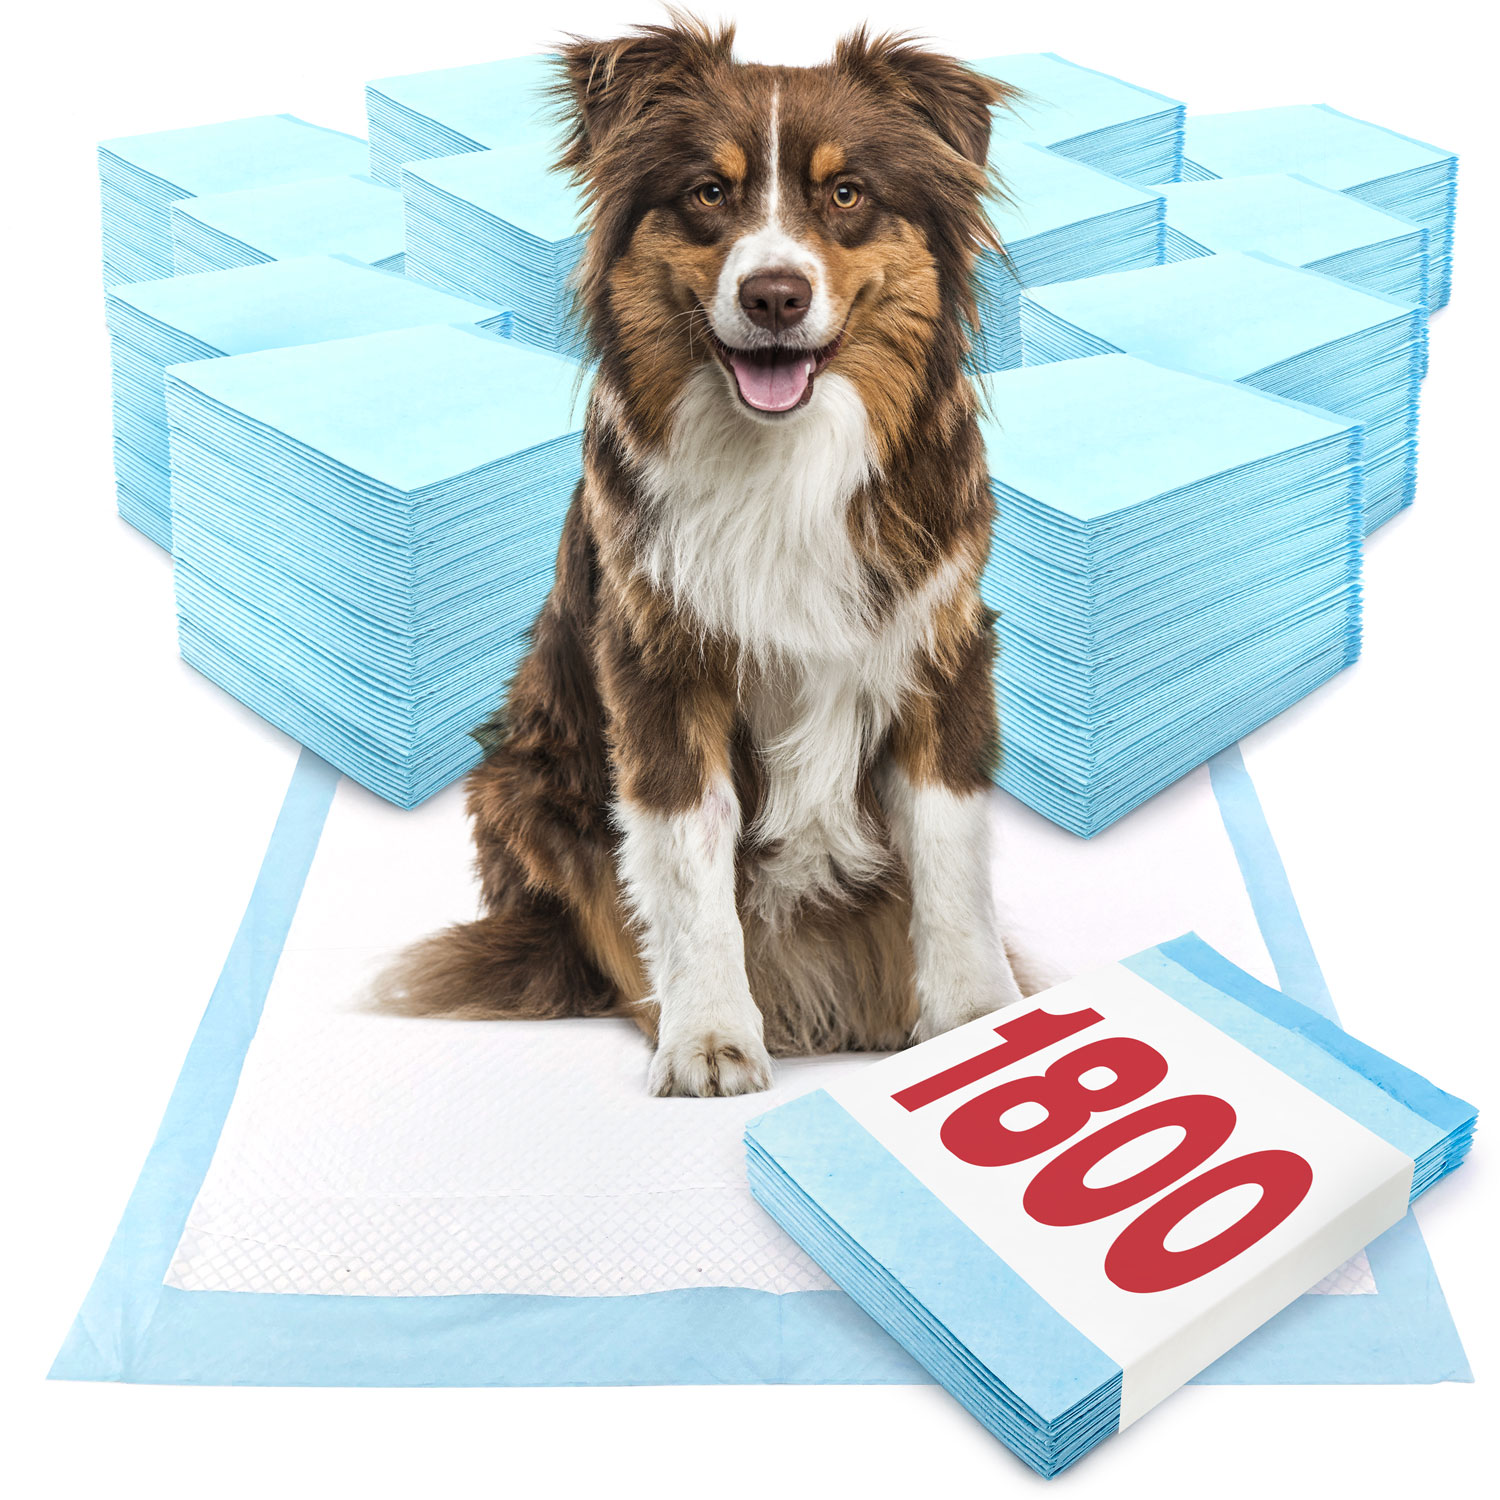 ValuePad Puppy Pads, Large 28x30 Inch, 1800 Count